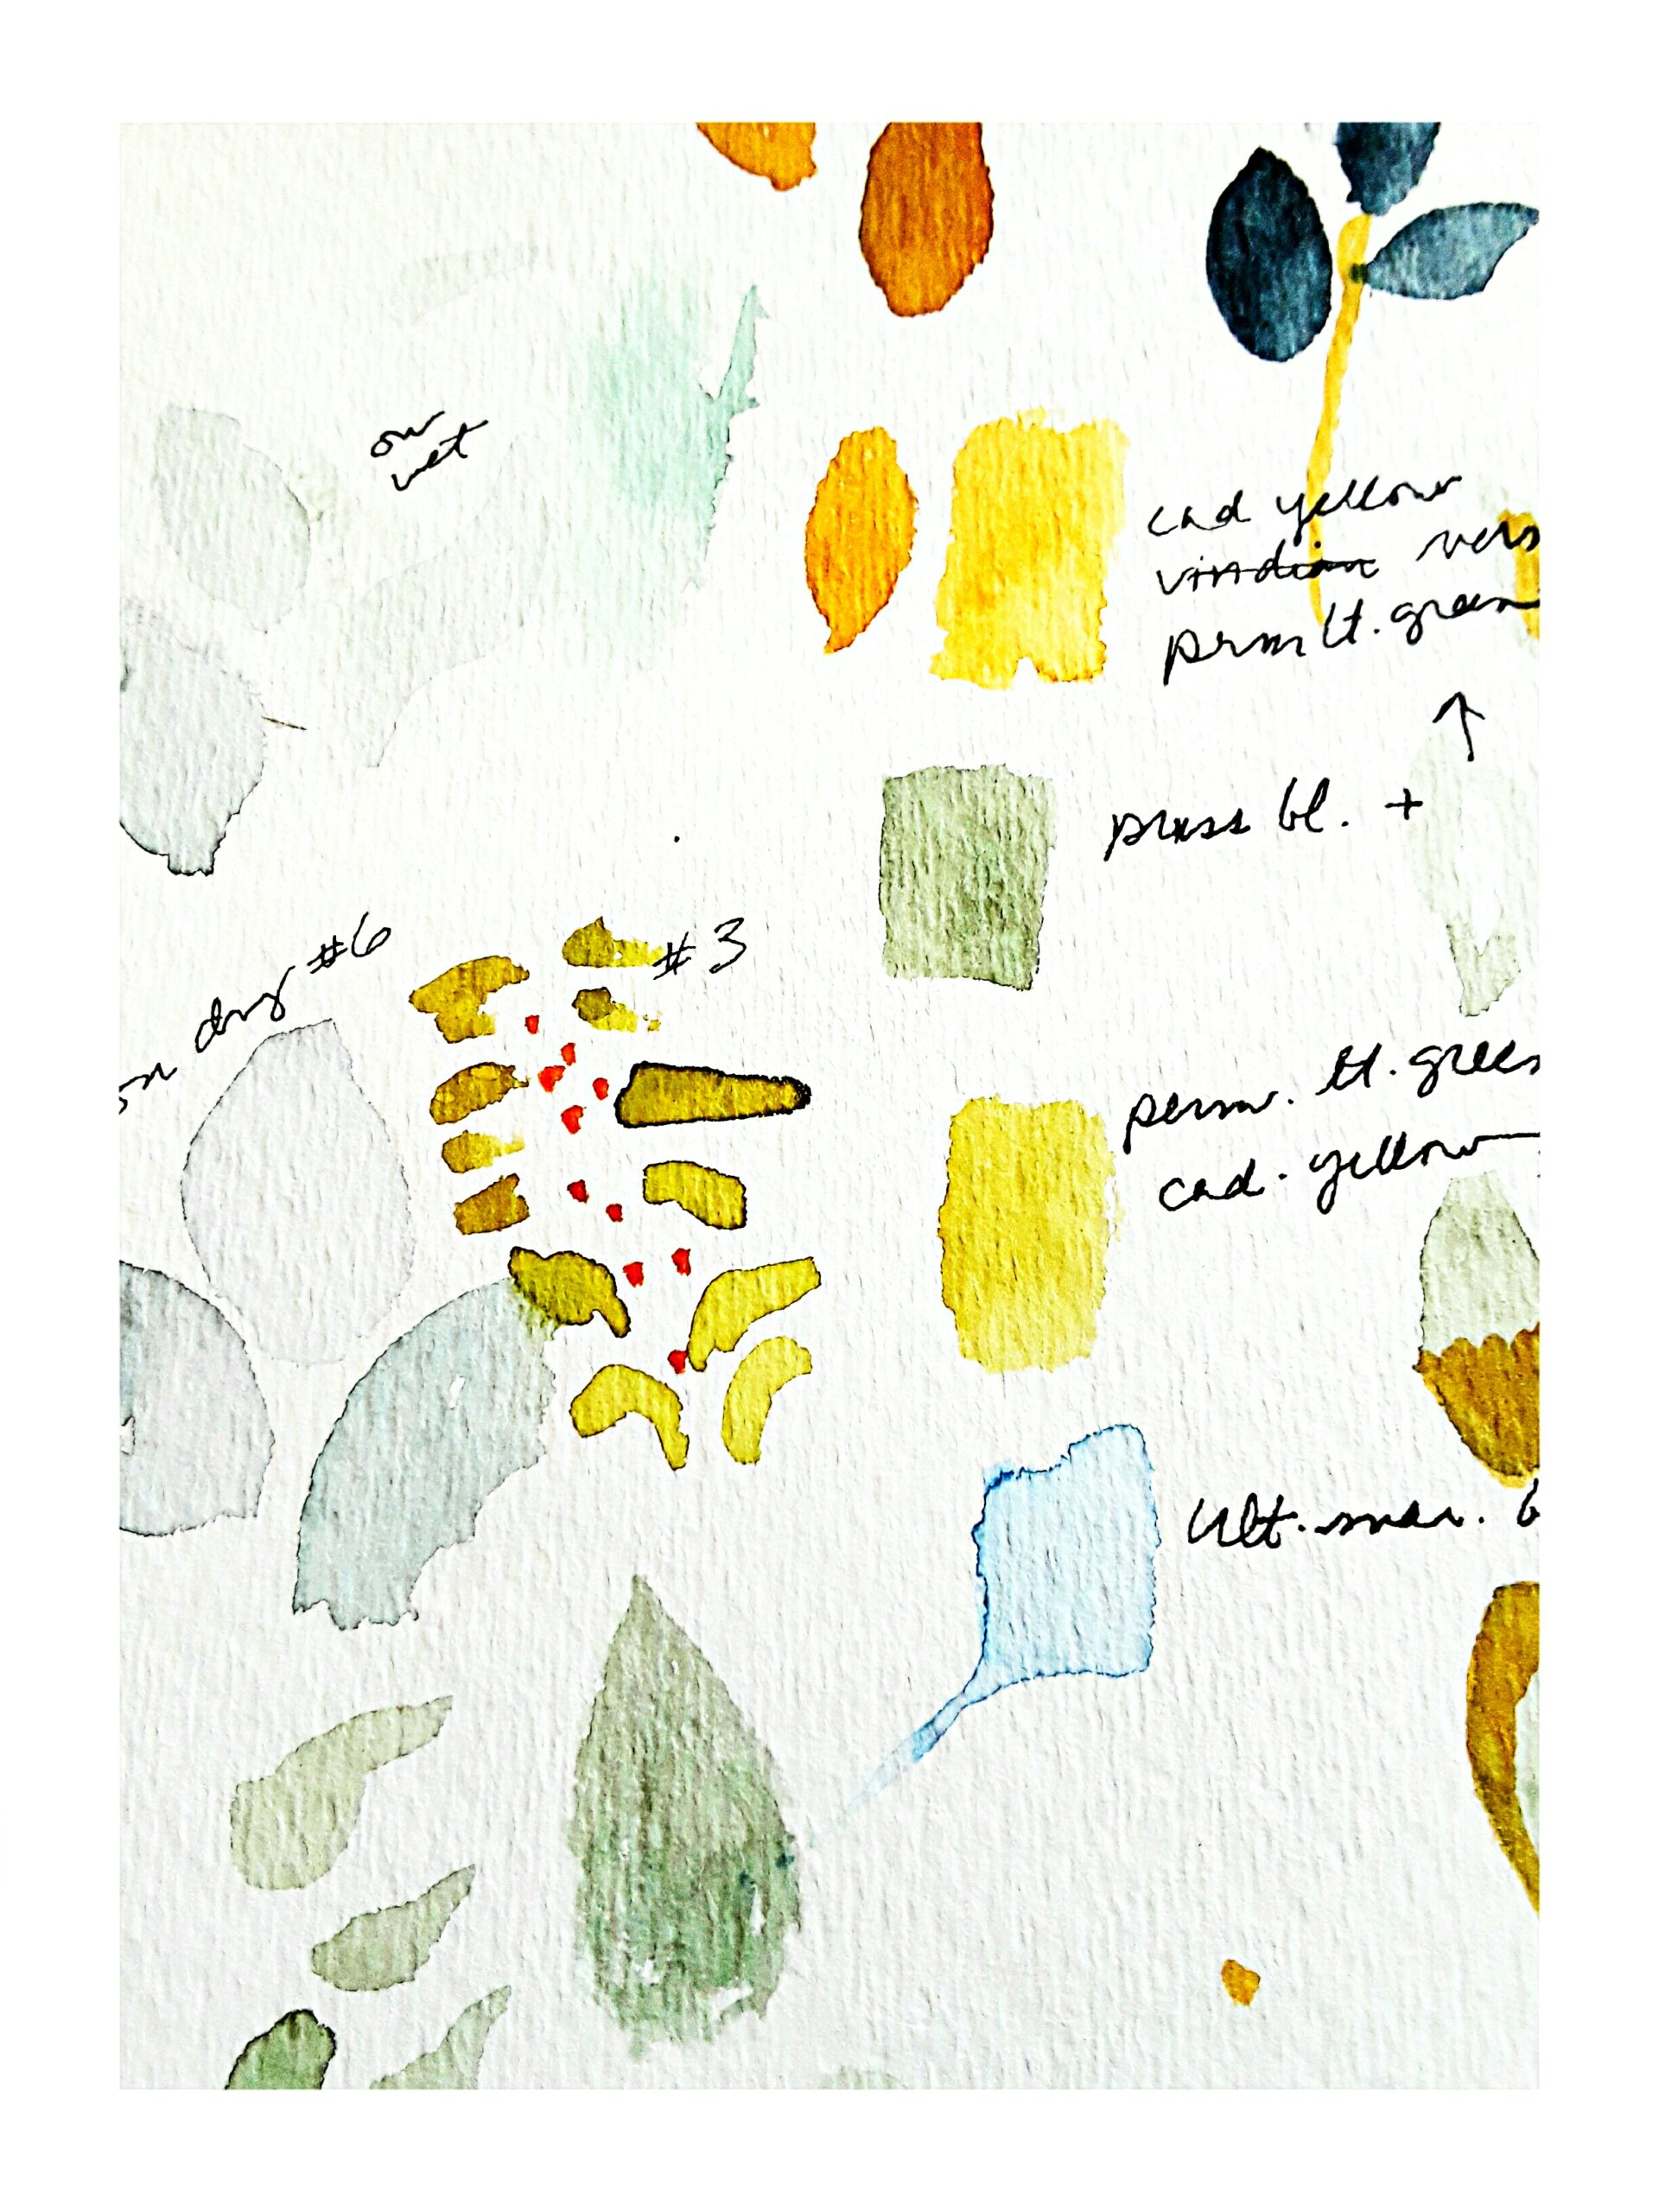 color swatches on paper are experiments in choosing a palette for the painting.